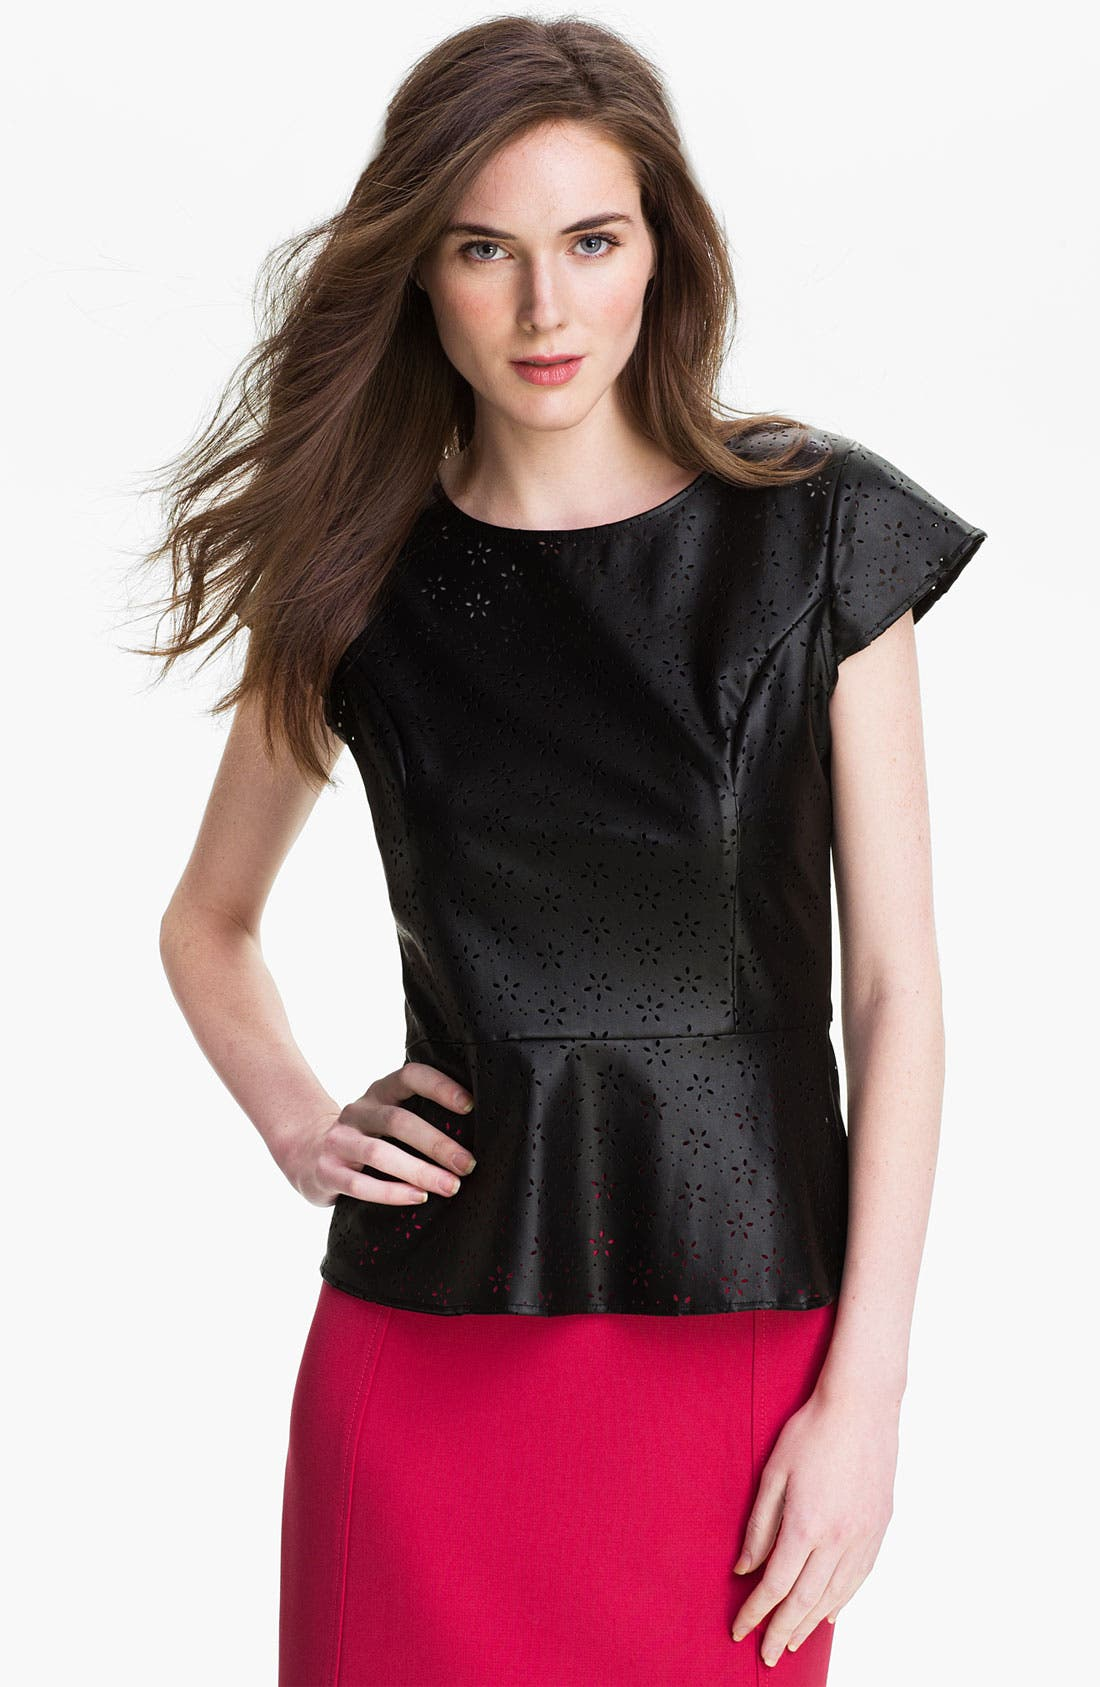 Alternate Image 1 Selected - Max & Mia Perforated Faux Leather Top